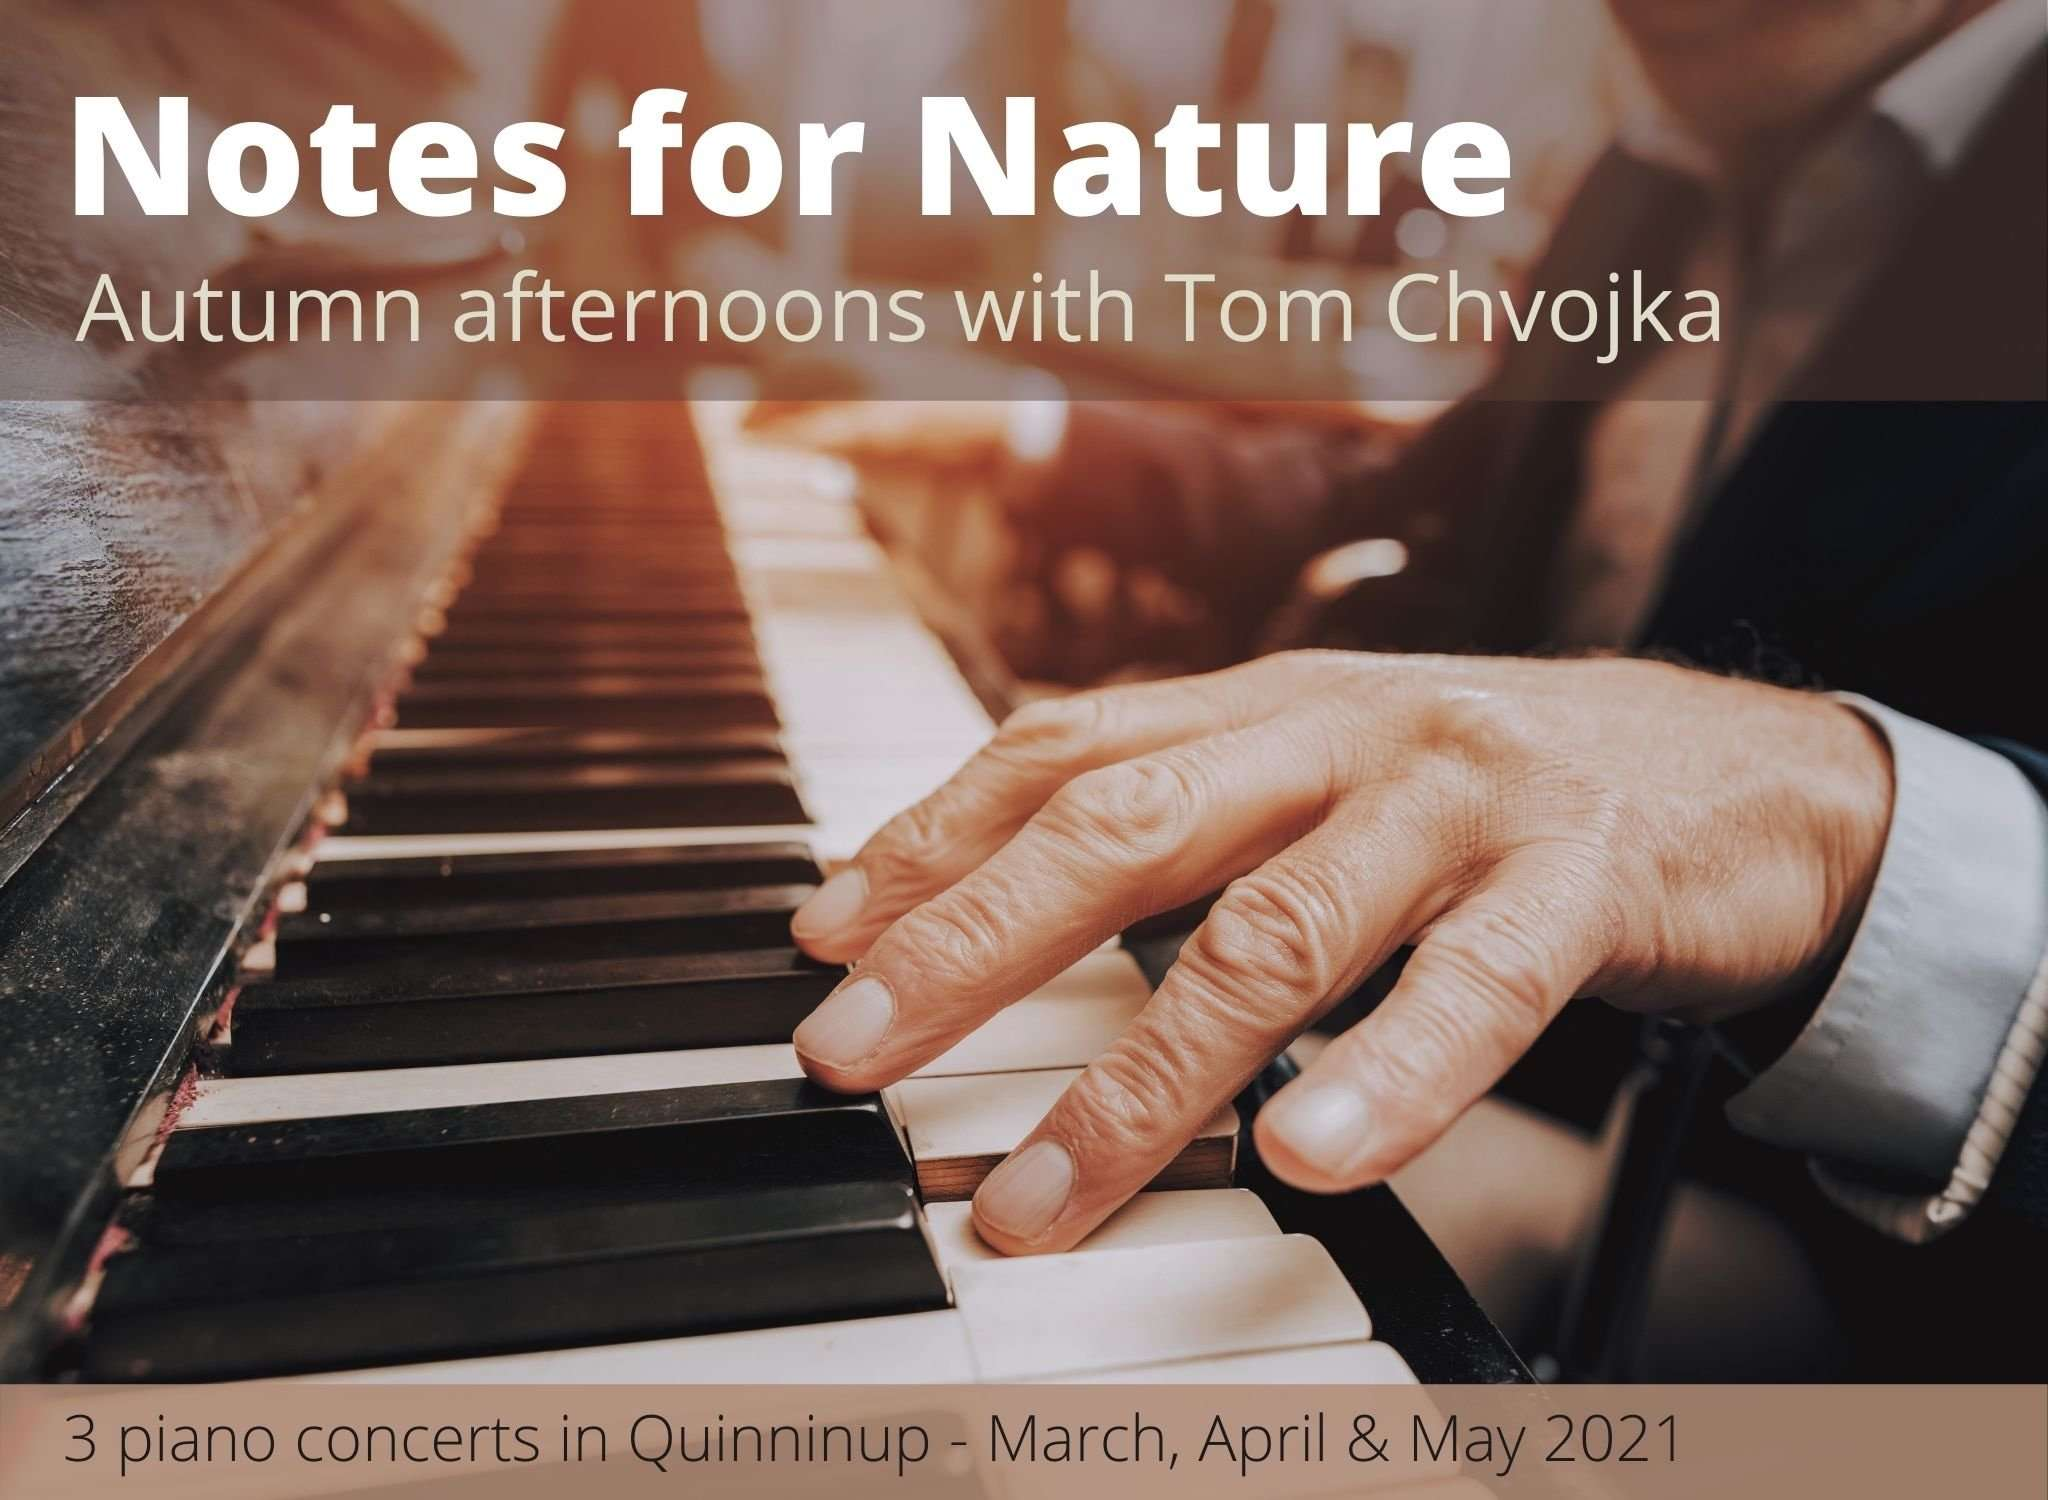 Notes for Nature Autumn afternoons in with Tom Chvojka presented in Quinninup by Southern Forest Arts